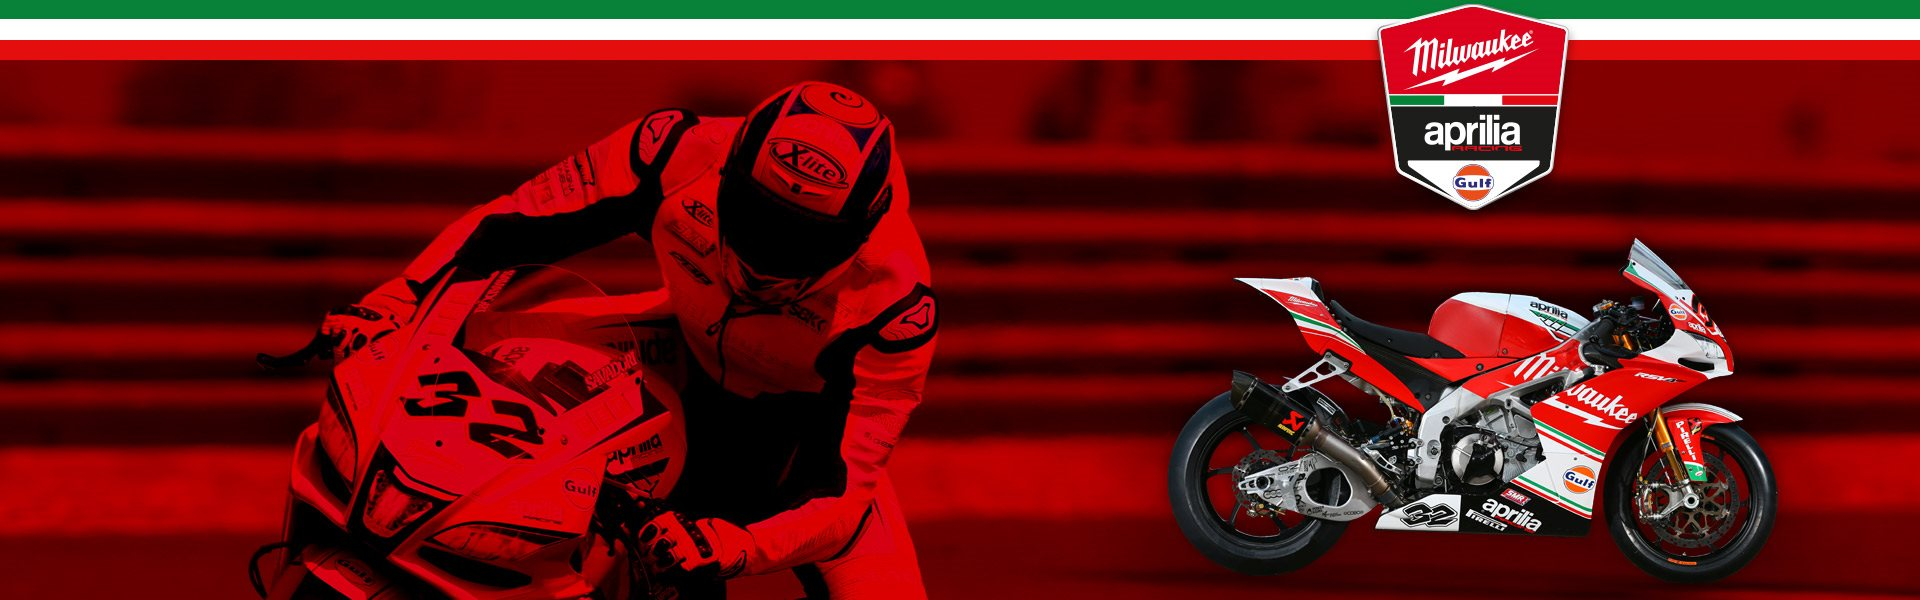 ENTER TO WIN A 